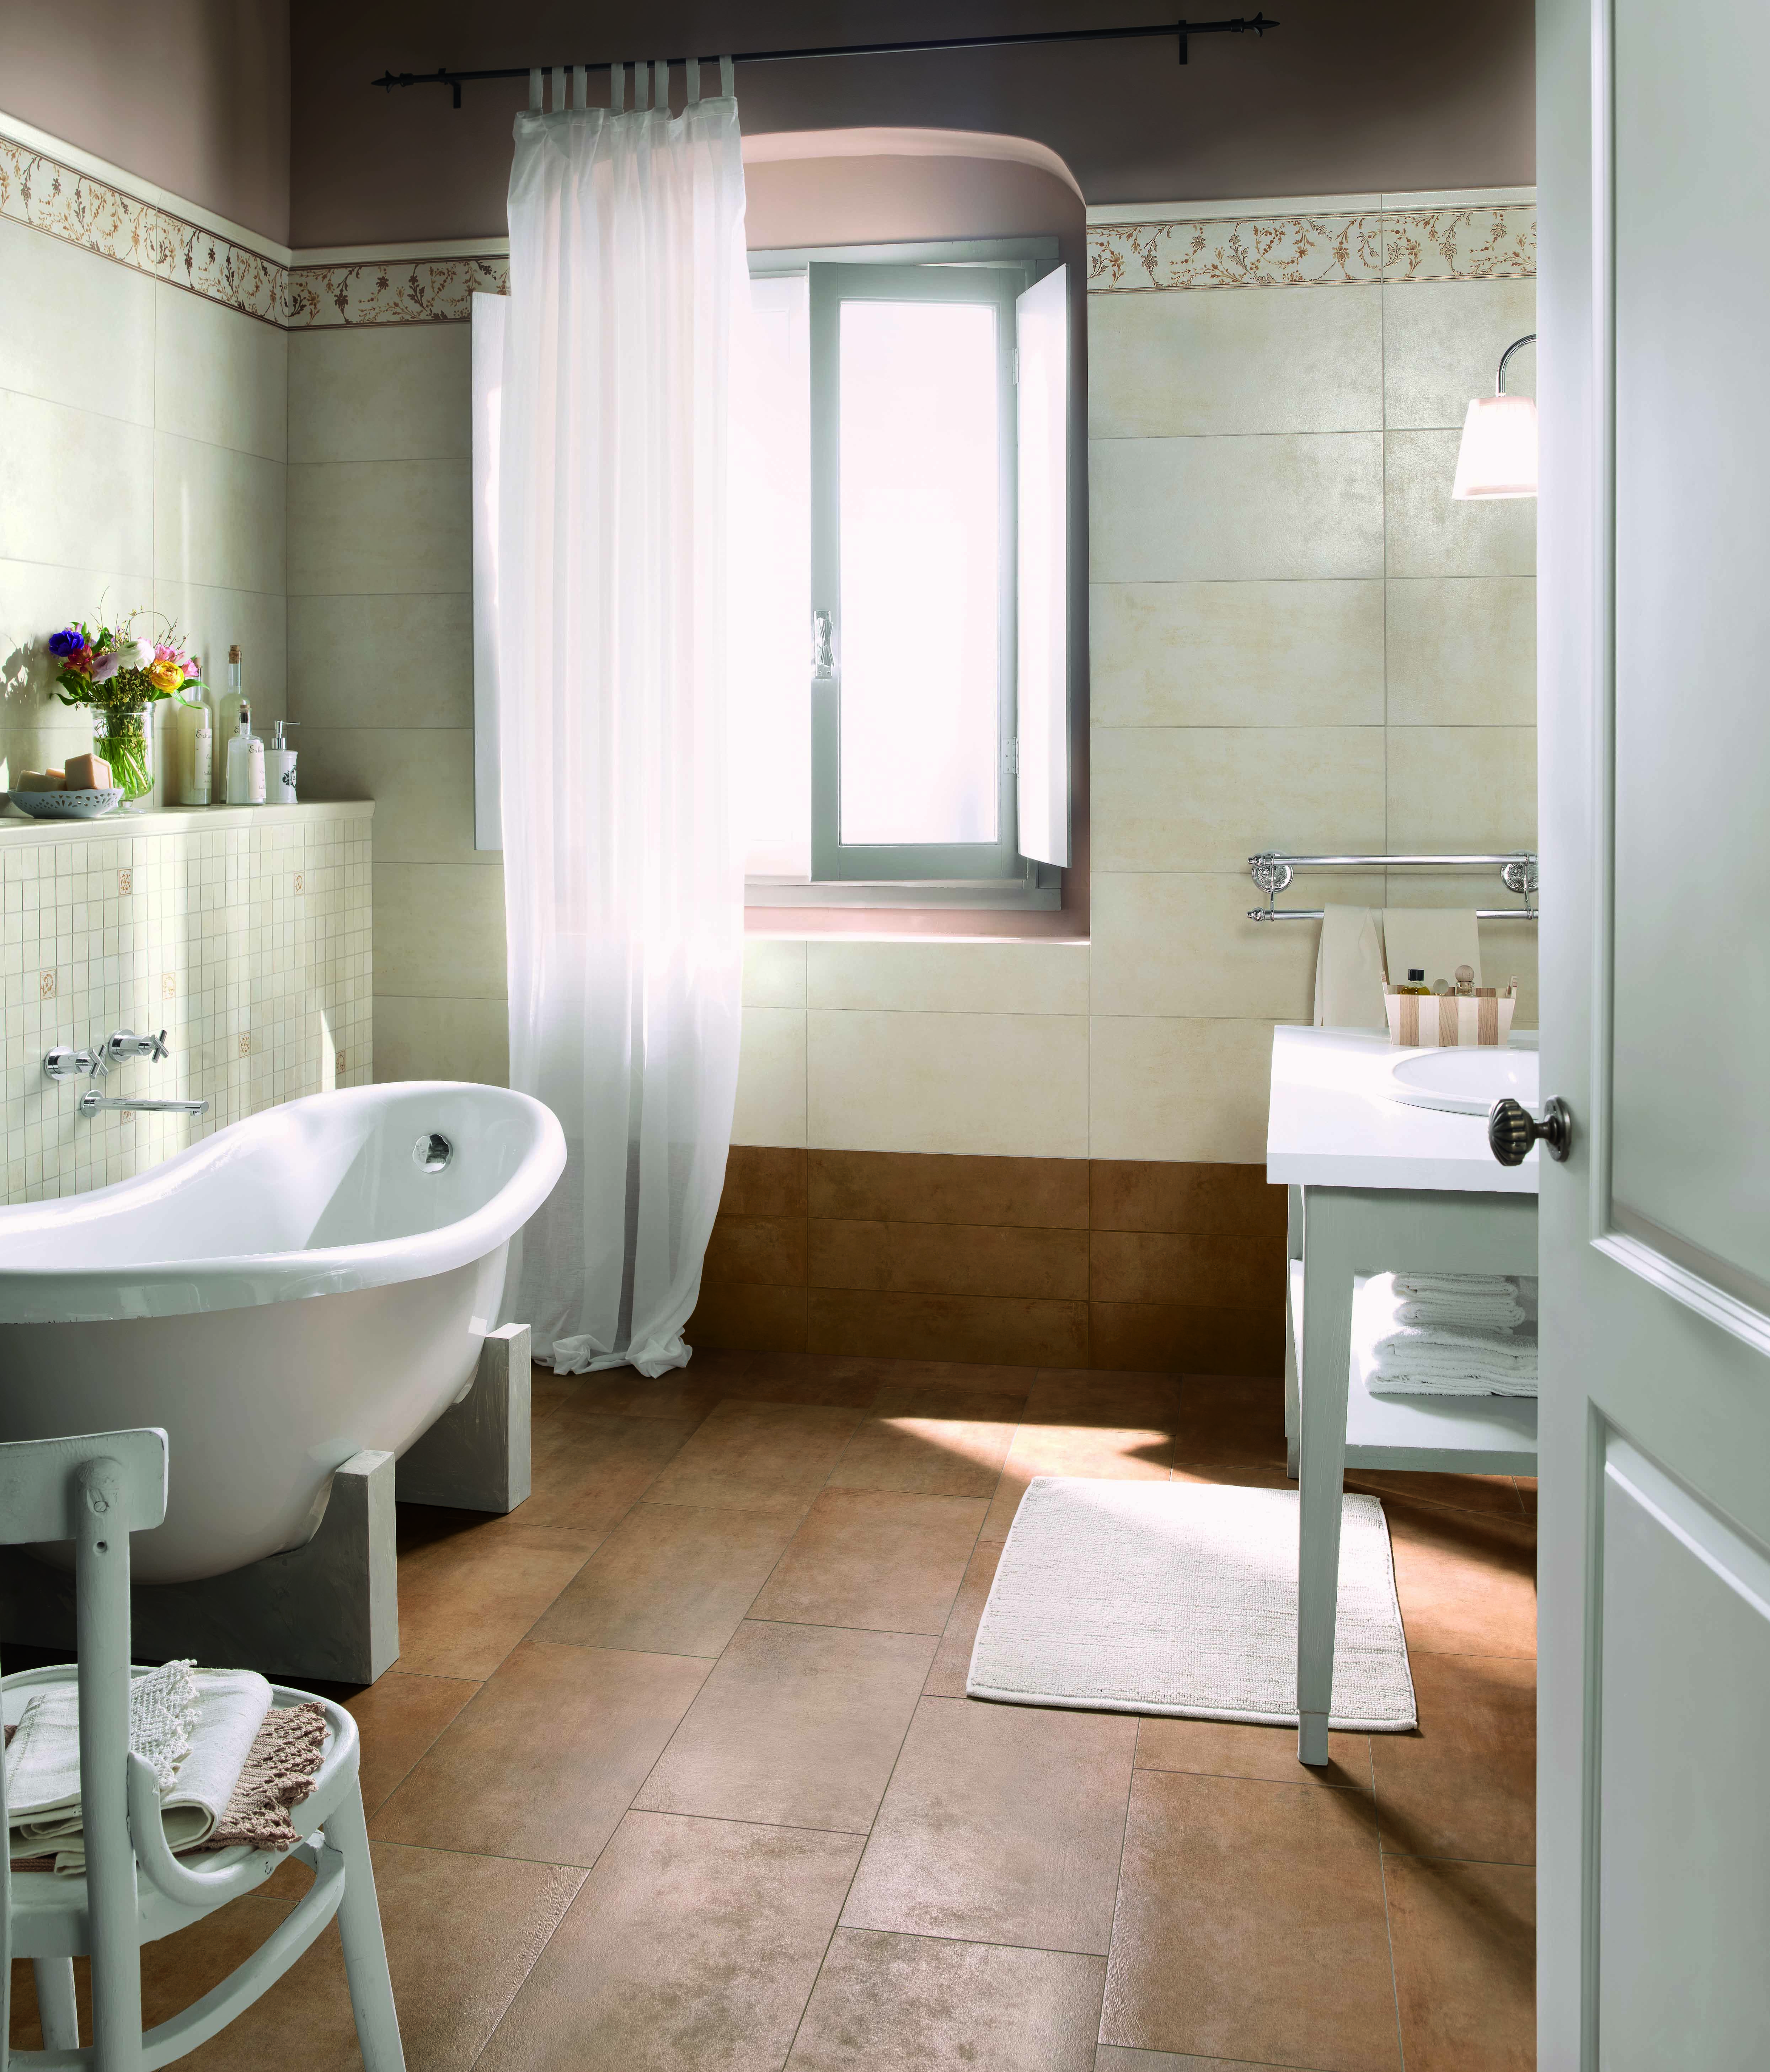 Give your bathroom an artisanal look with terracotta inspired tile give your bathroom an artisanal look with terracotta inspired tile by the convivium collection by dailygadgetfo Gallery